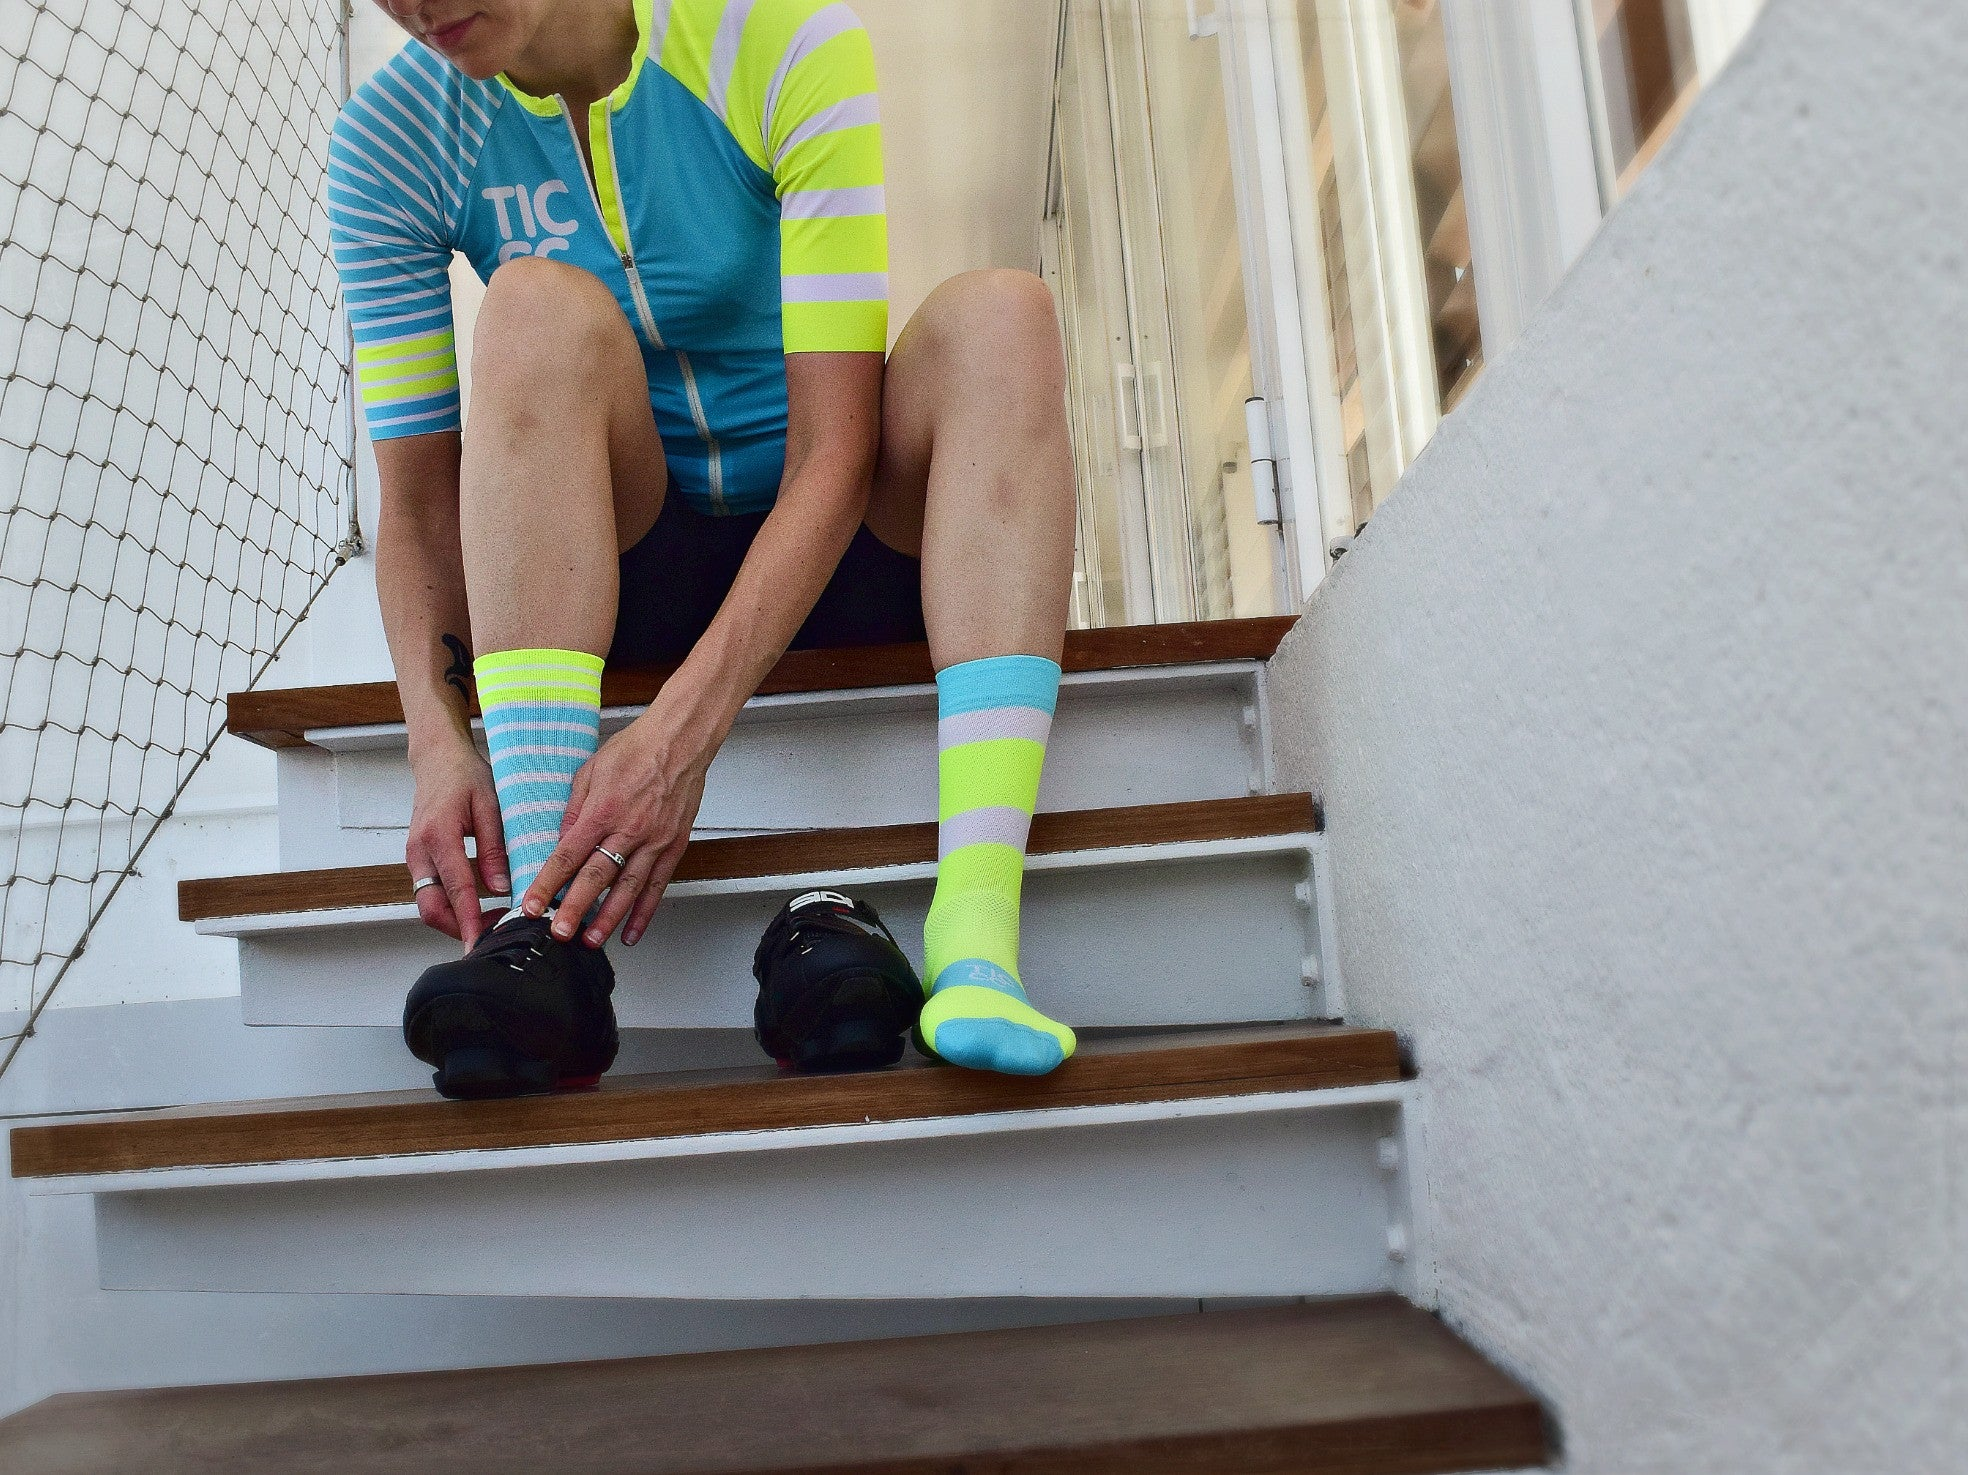 TIC Turquoise/ Yellow À Bloc Socks | The CyclingTips Emporium - 3